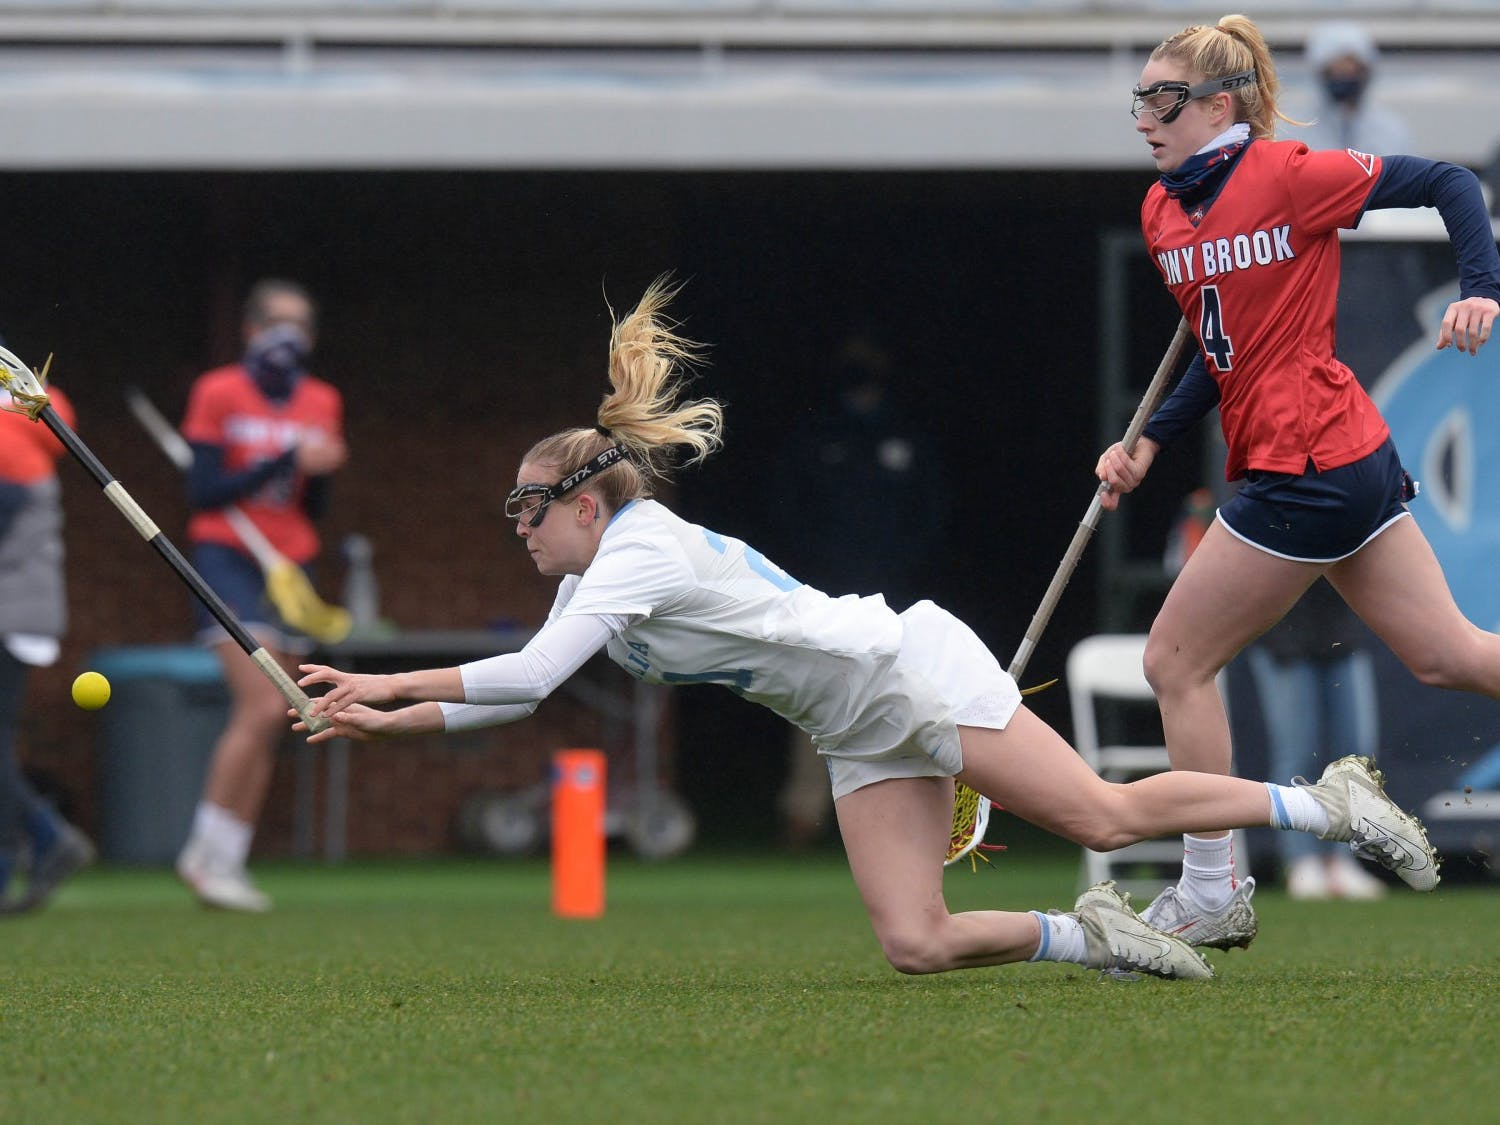 Redshirt sophomore midfielder Elizabeth Hillman lunges for the ball at the woman's lacrosse game against Stony Brook University at Dorrance Field on Sunday, Feb. 14, 2021. Photo courtesy of Jeffrey Camarati/UNC Athletics.